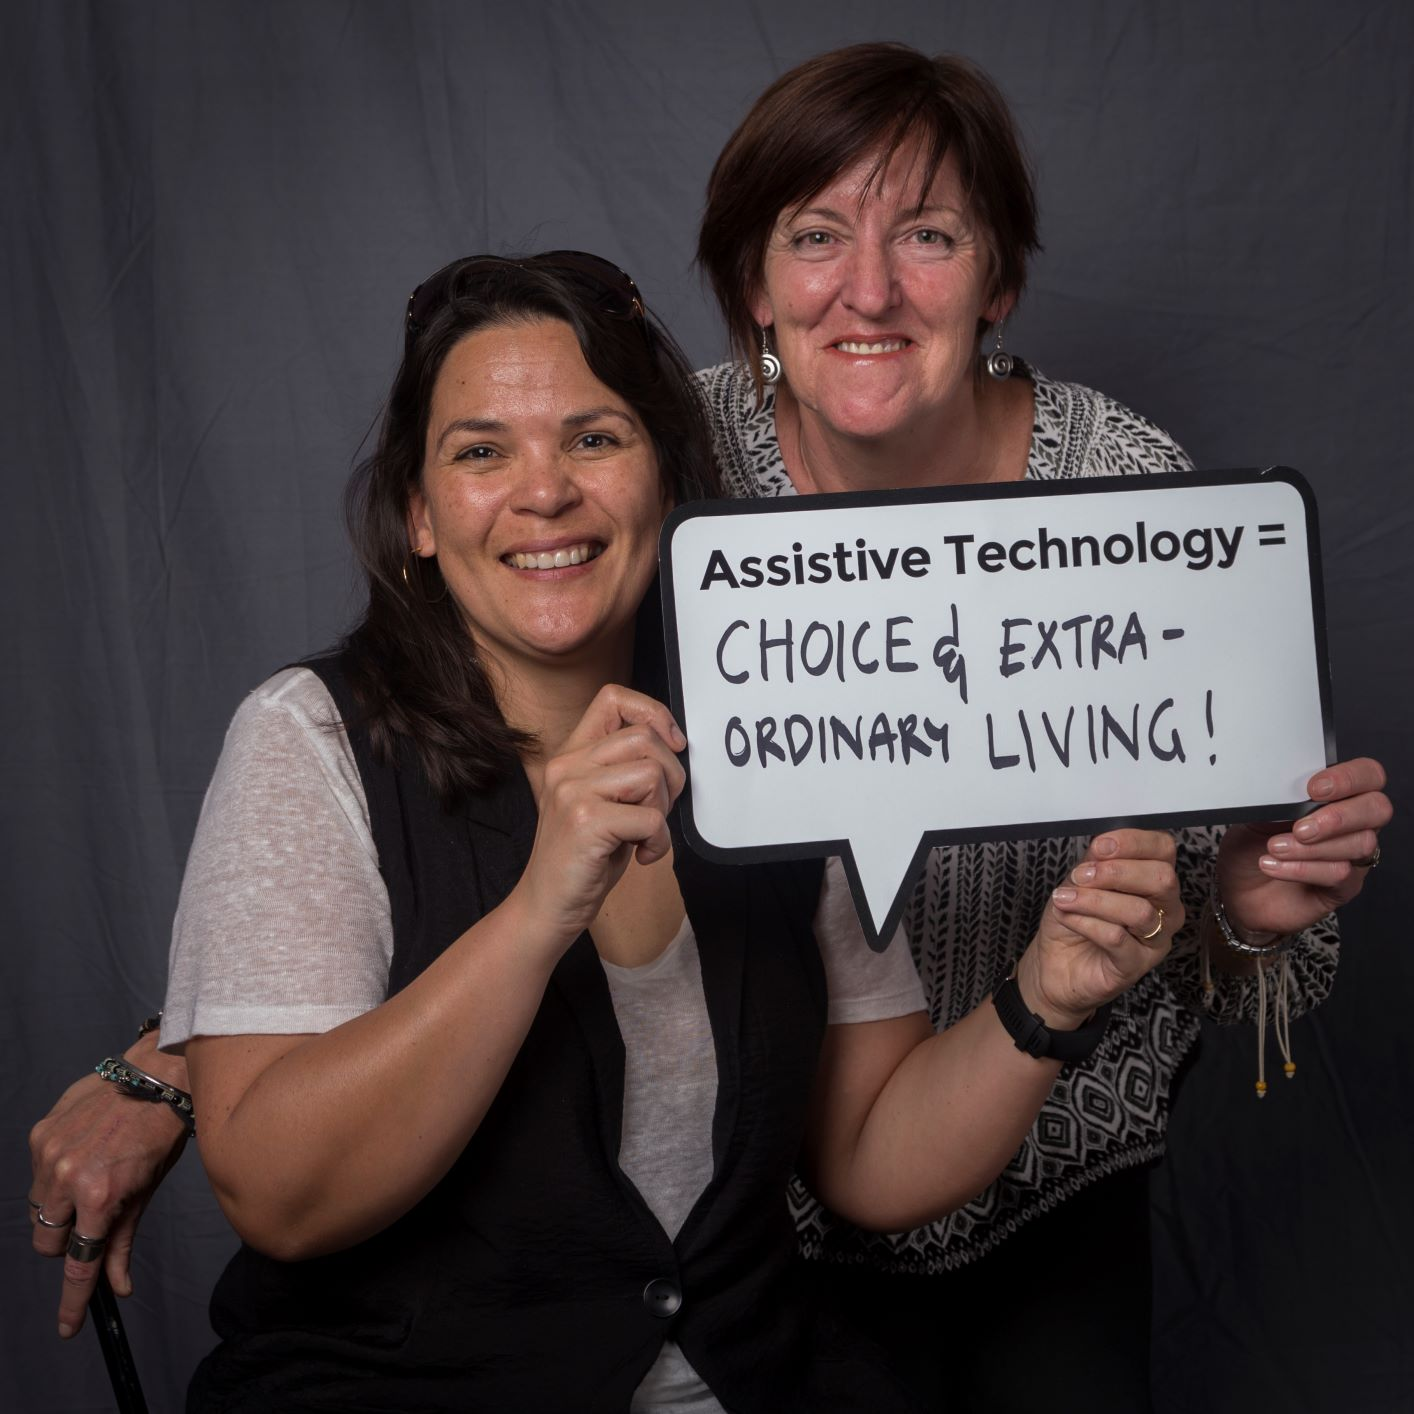 two woman holding up a speech bubble sign that reads assistive technology = choice and extra ordinary living